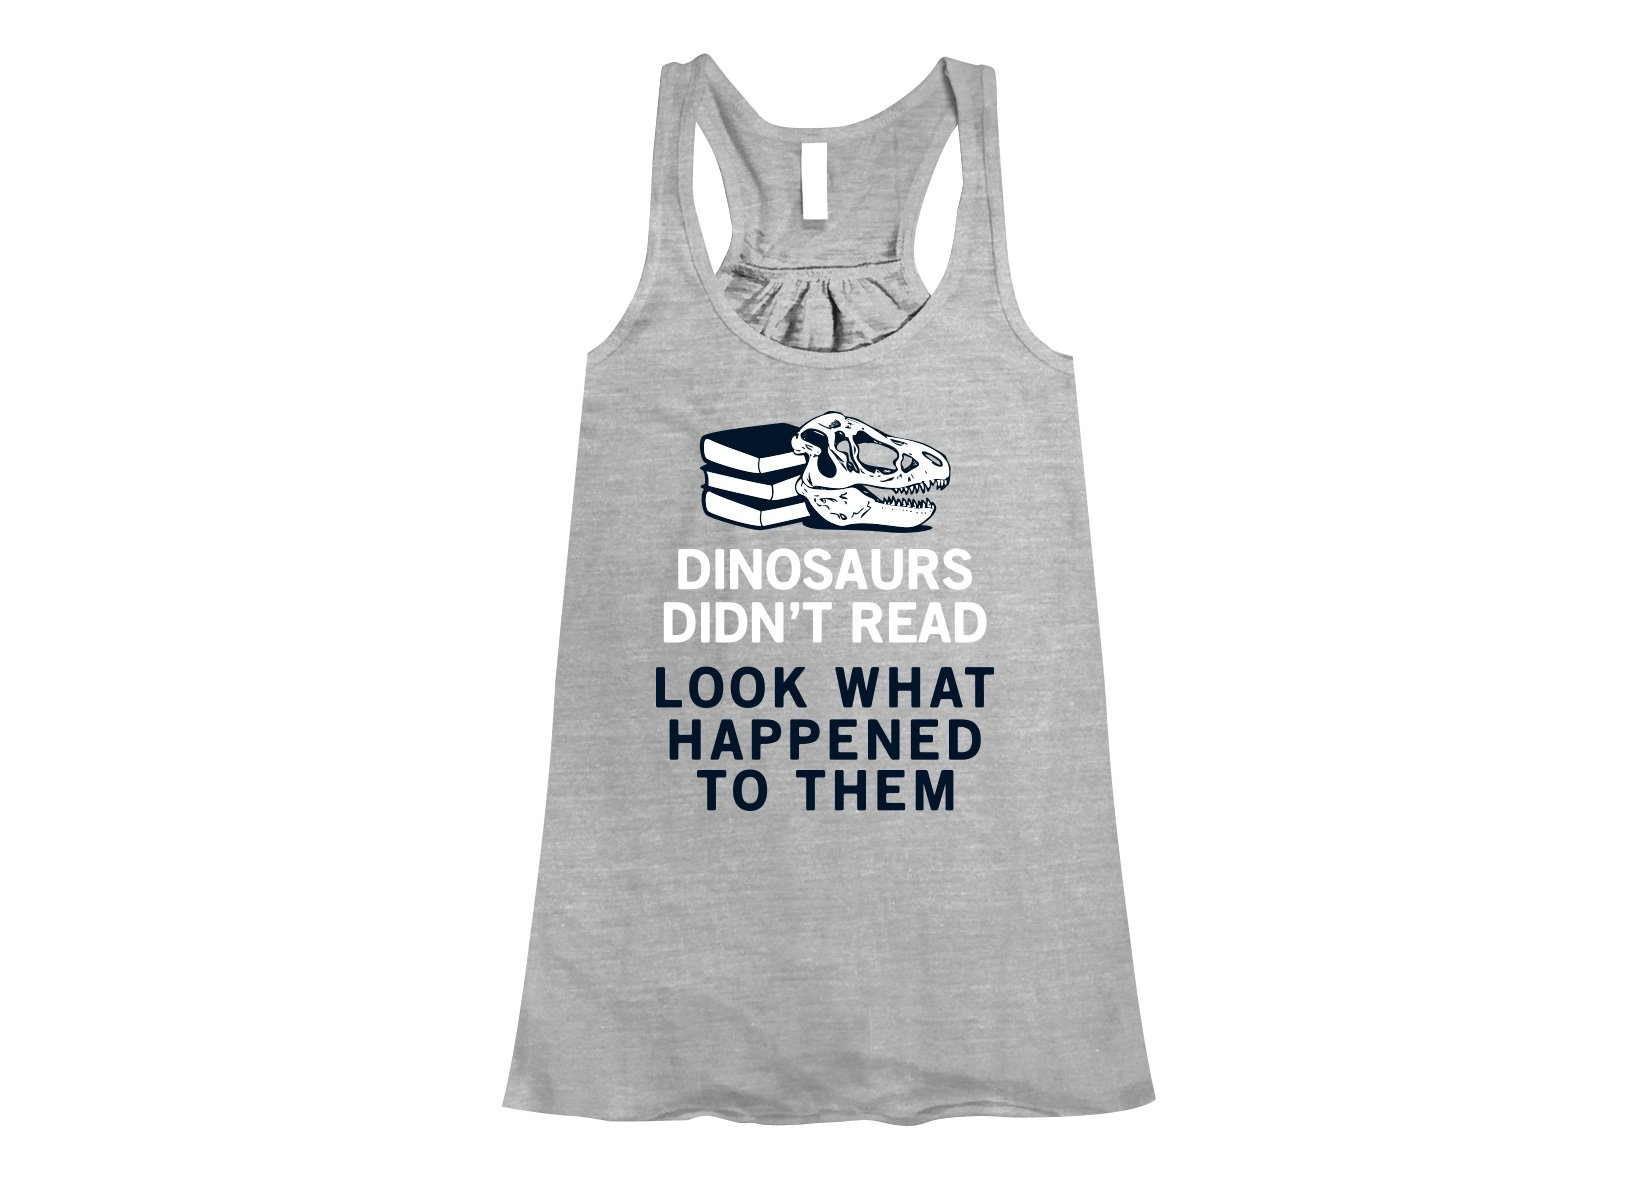 Dinosaurs Didn't Read on Womens Tanks T-Shirt